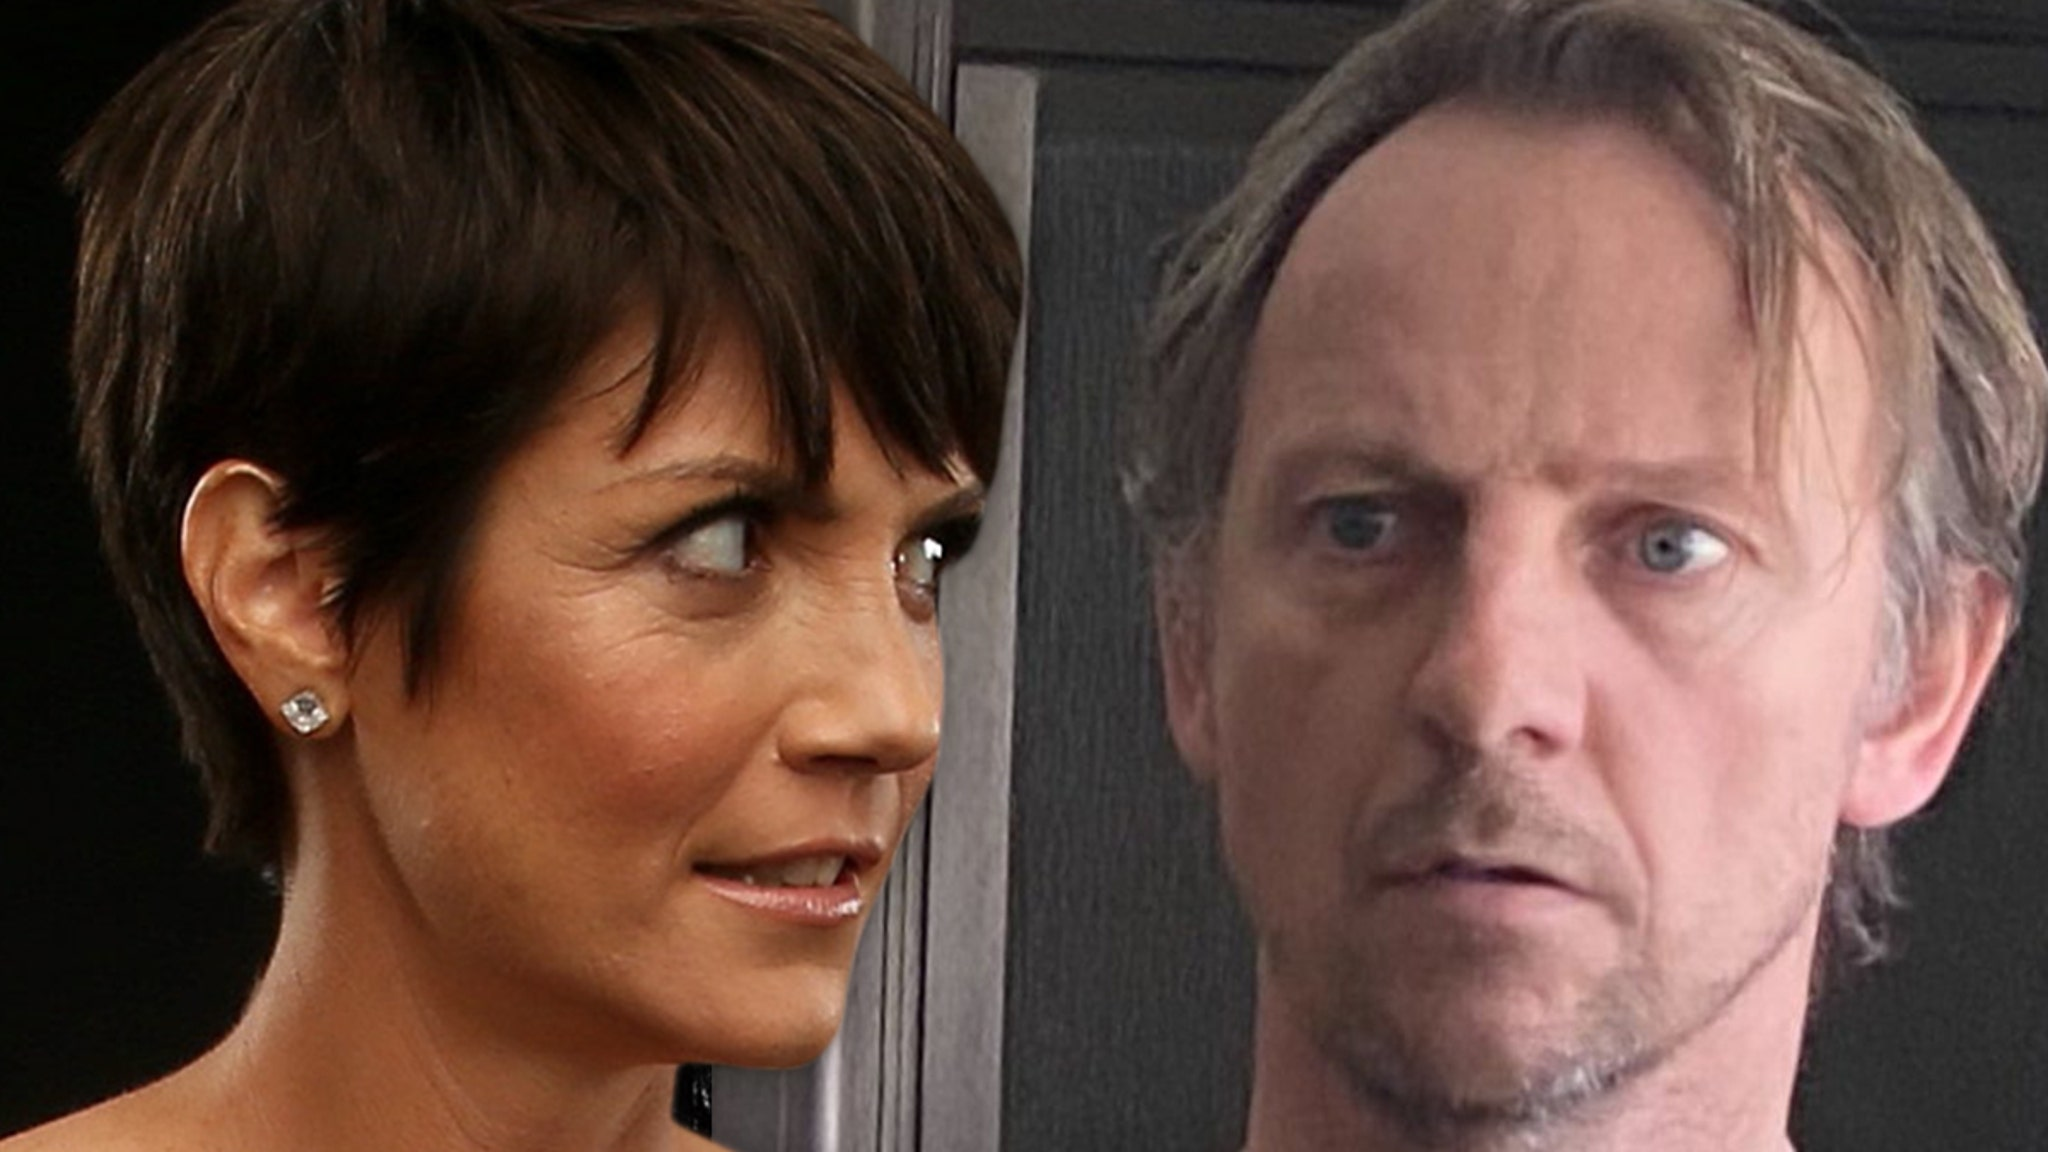 Ex-'NCIS' Star Zoe McLellan Wanted for Kidnapping, Virtually Vanished